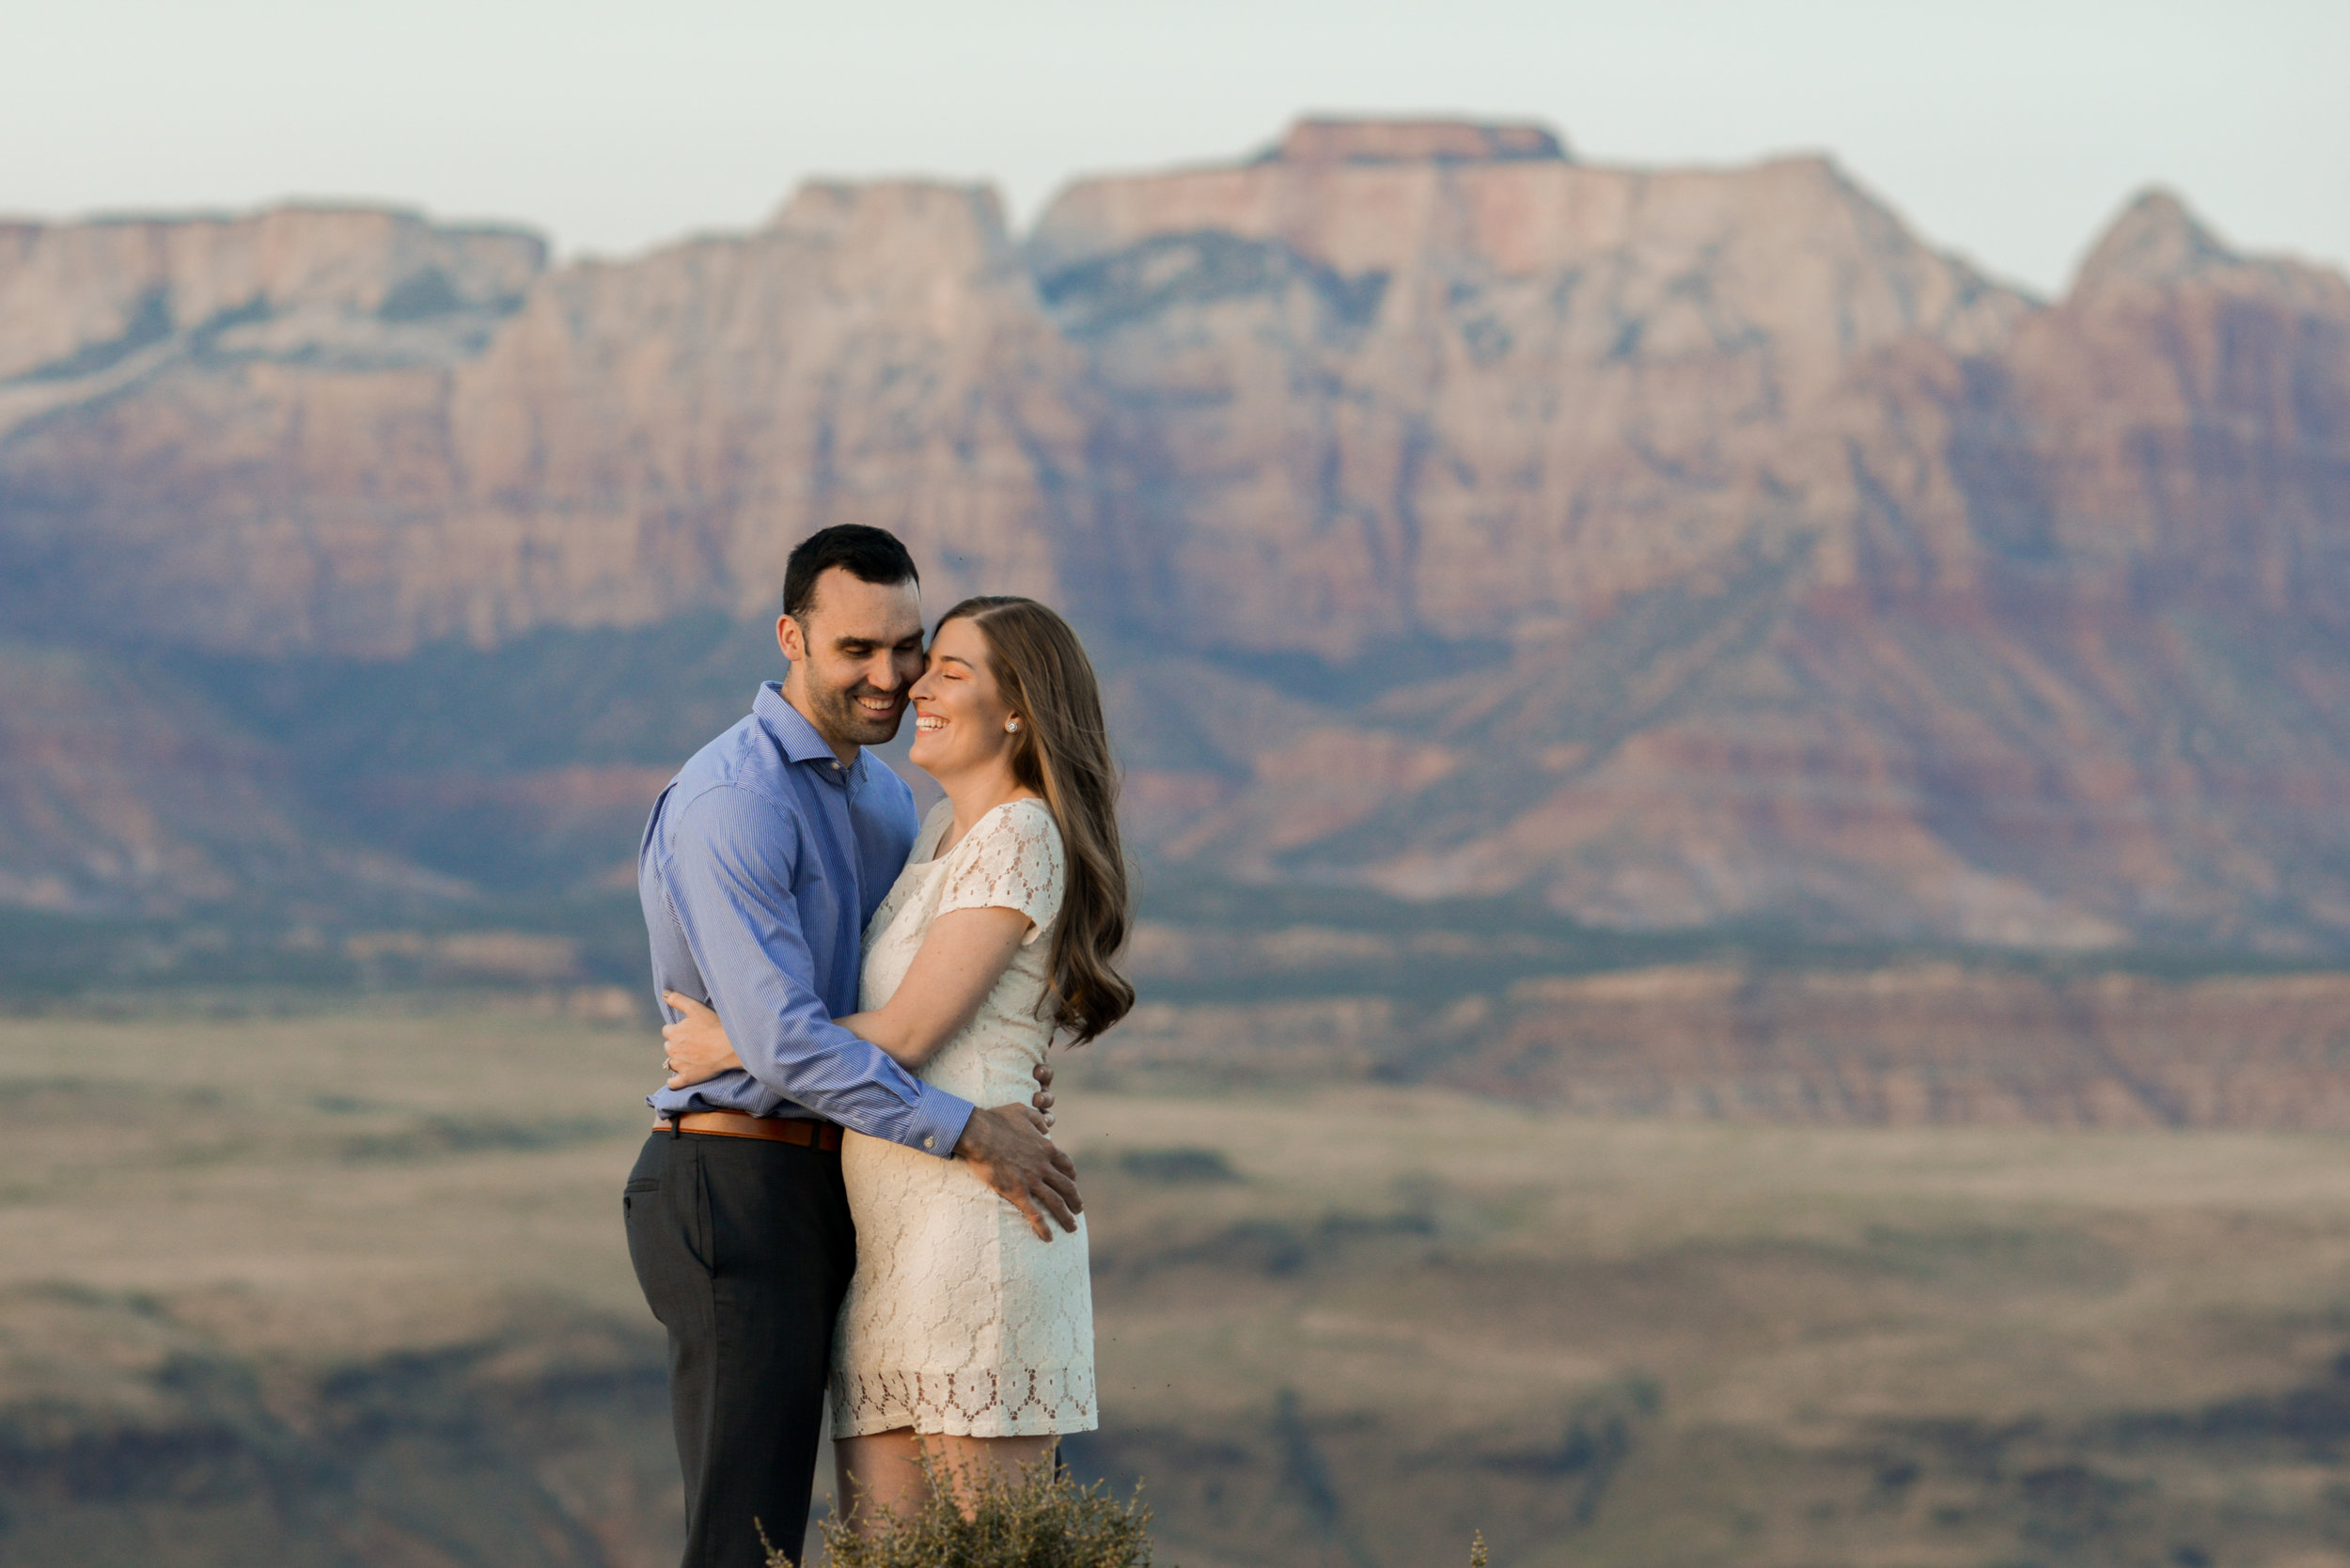 zionnationalparkengagementphotos (70 of 53).jpg